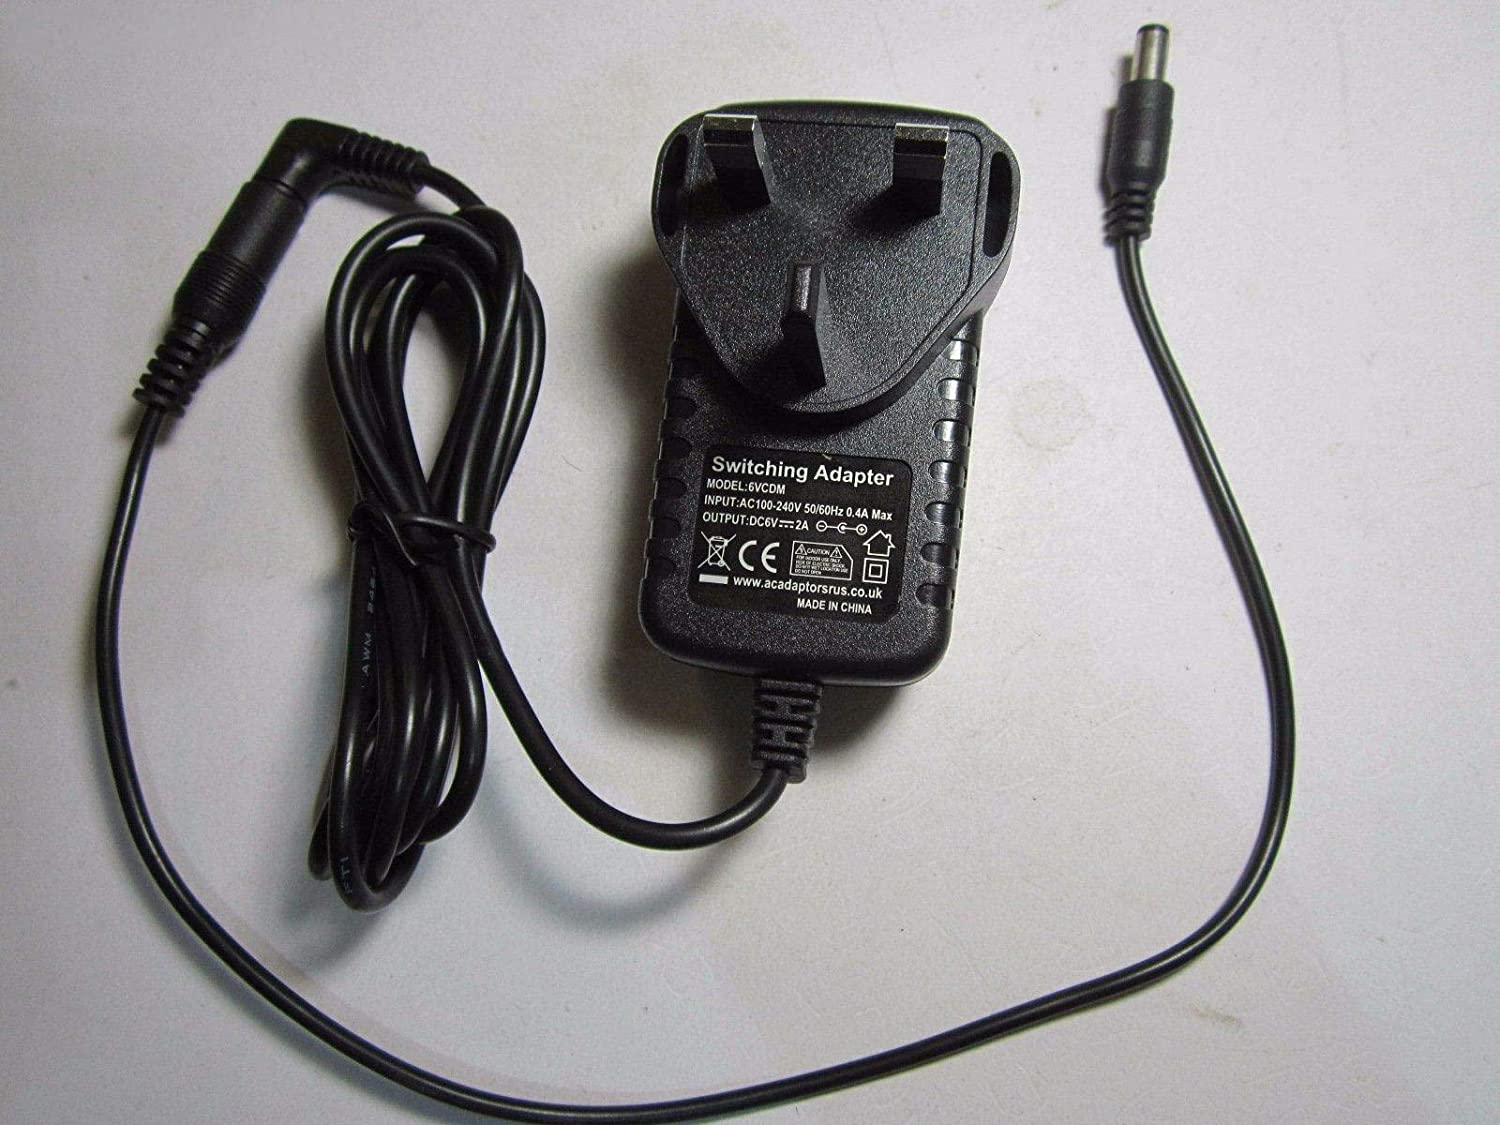 GOOD LEAD 6V 800mA Mains AC DC Switching Adapter Power Supply 3.5mm x 1.3mm 3.5x1.3 Jack